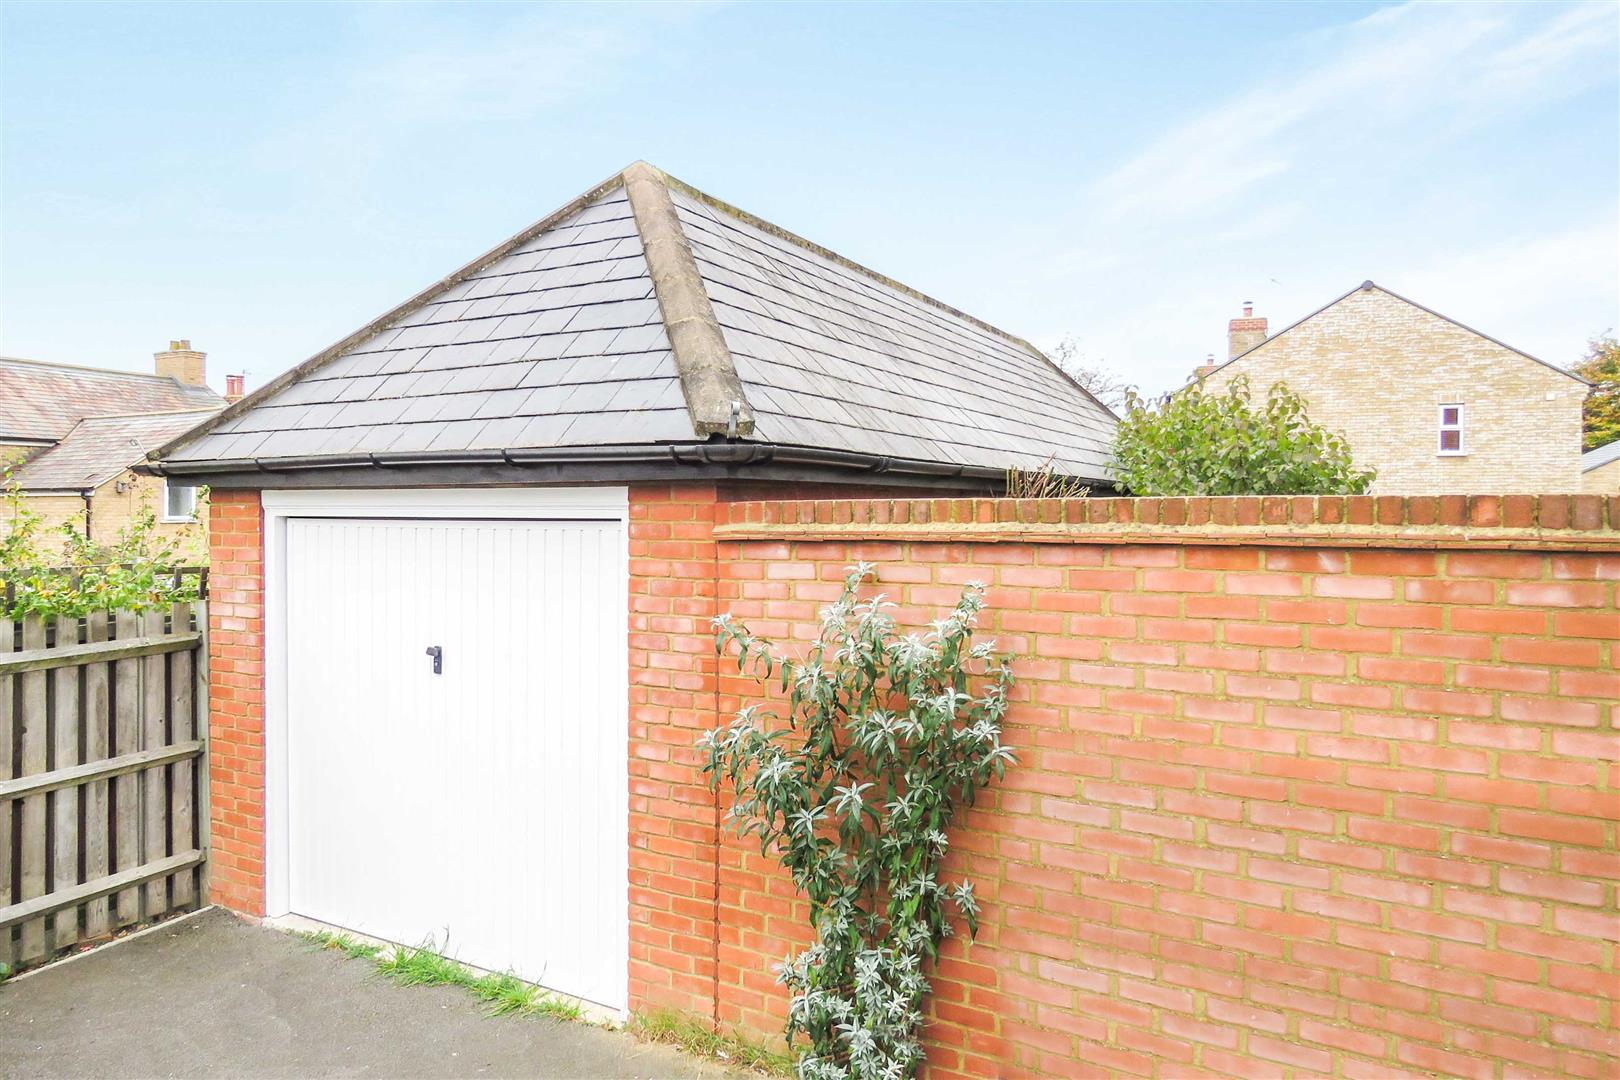 Bedroom end of terrace house for sale in henlow